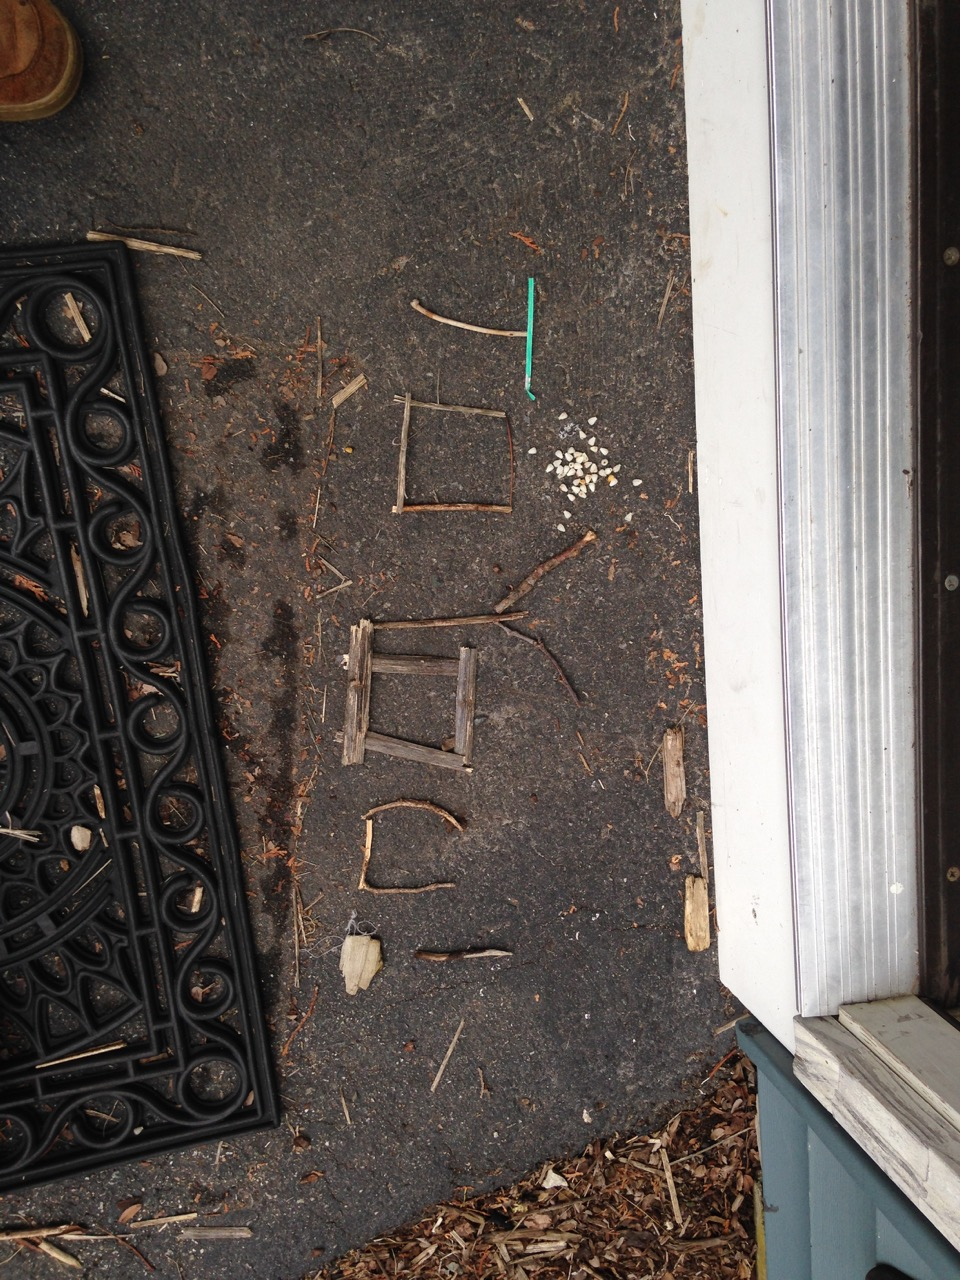 A message on the doorstep.